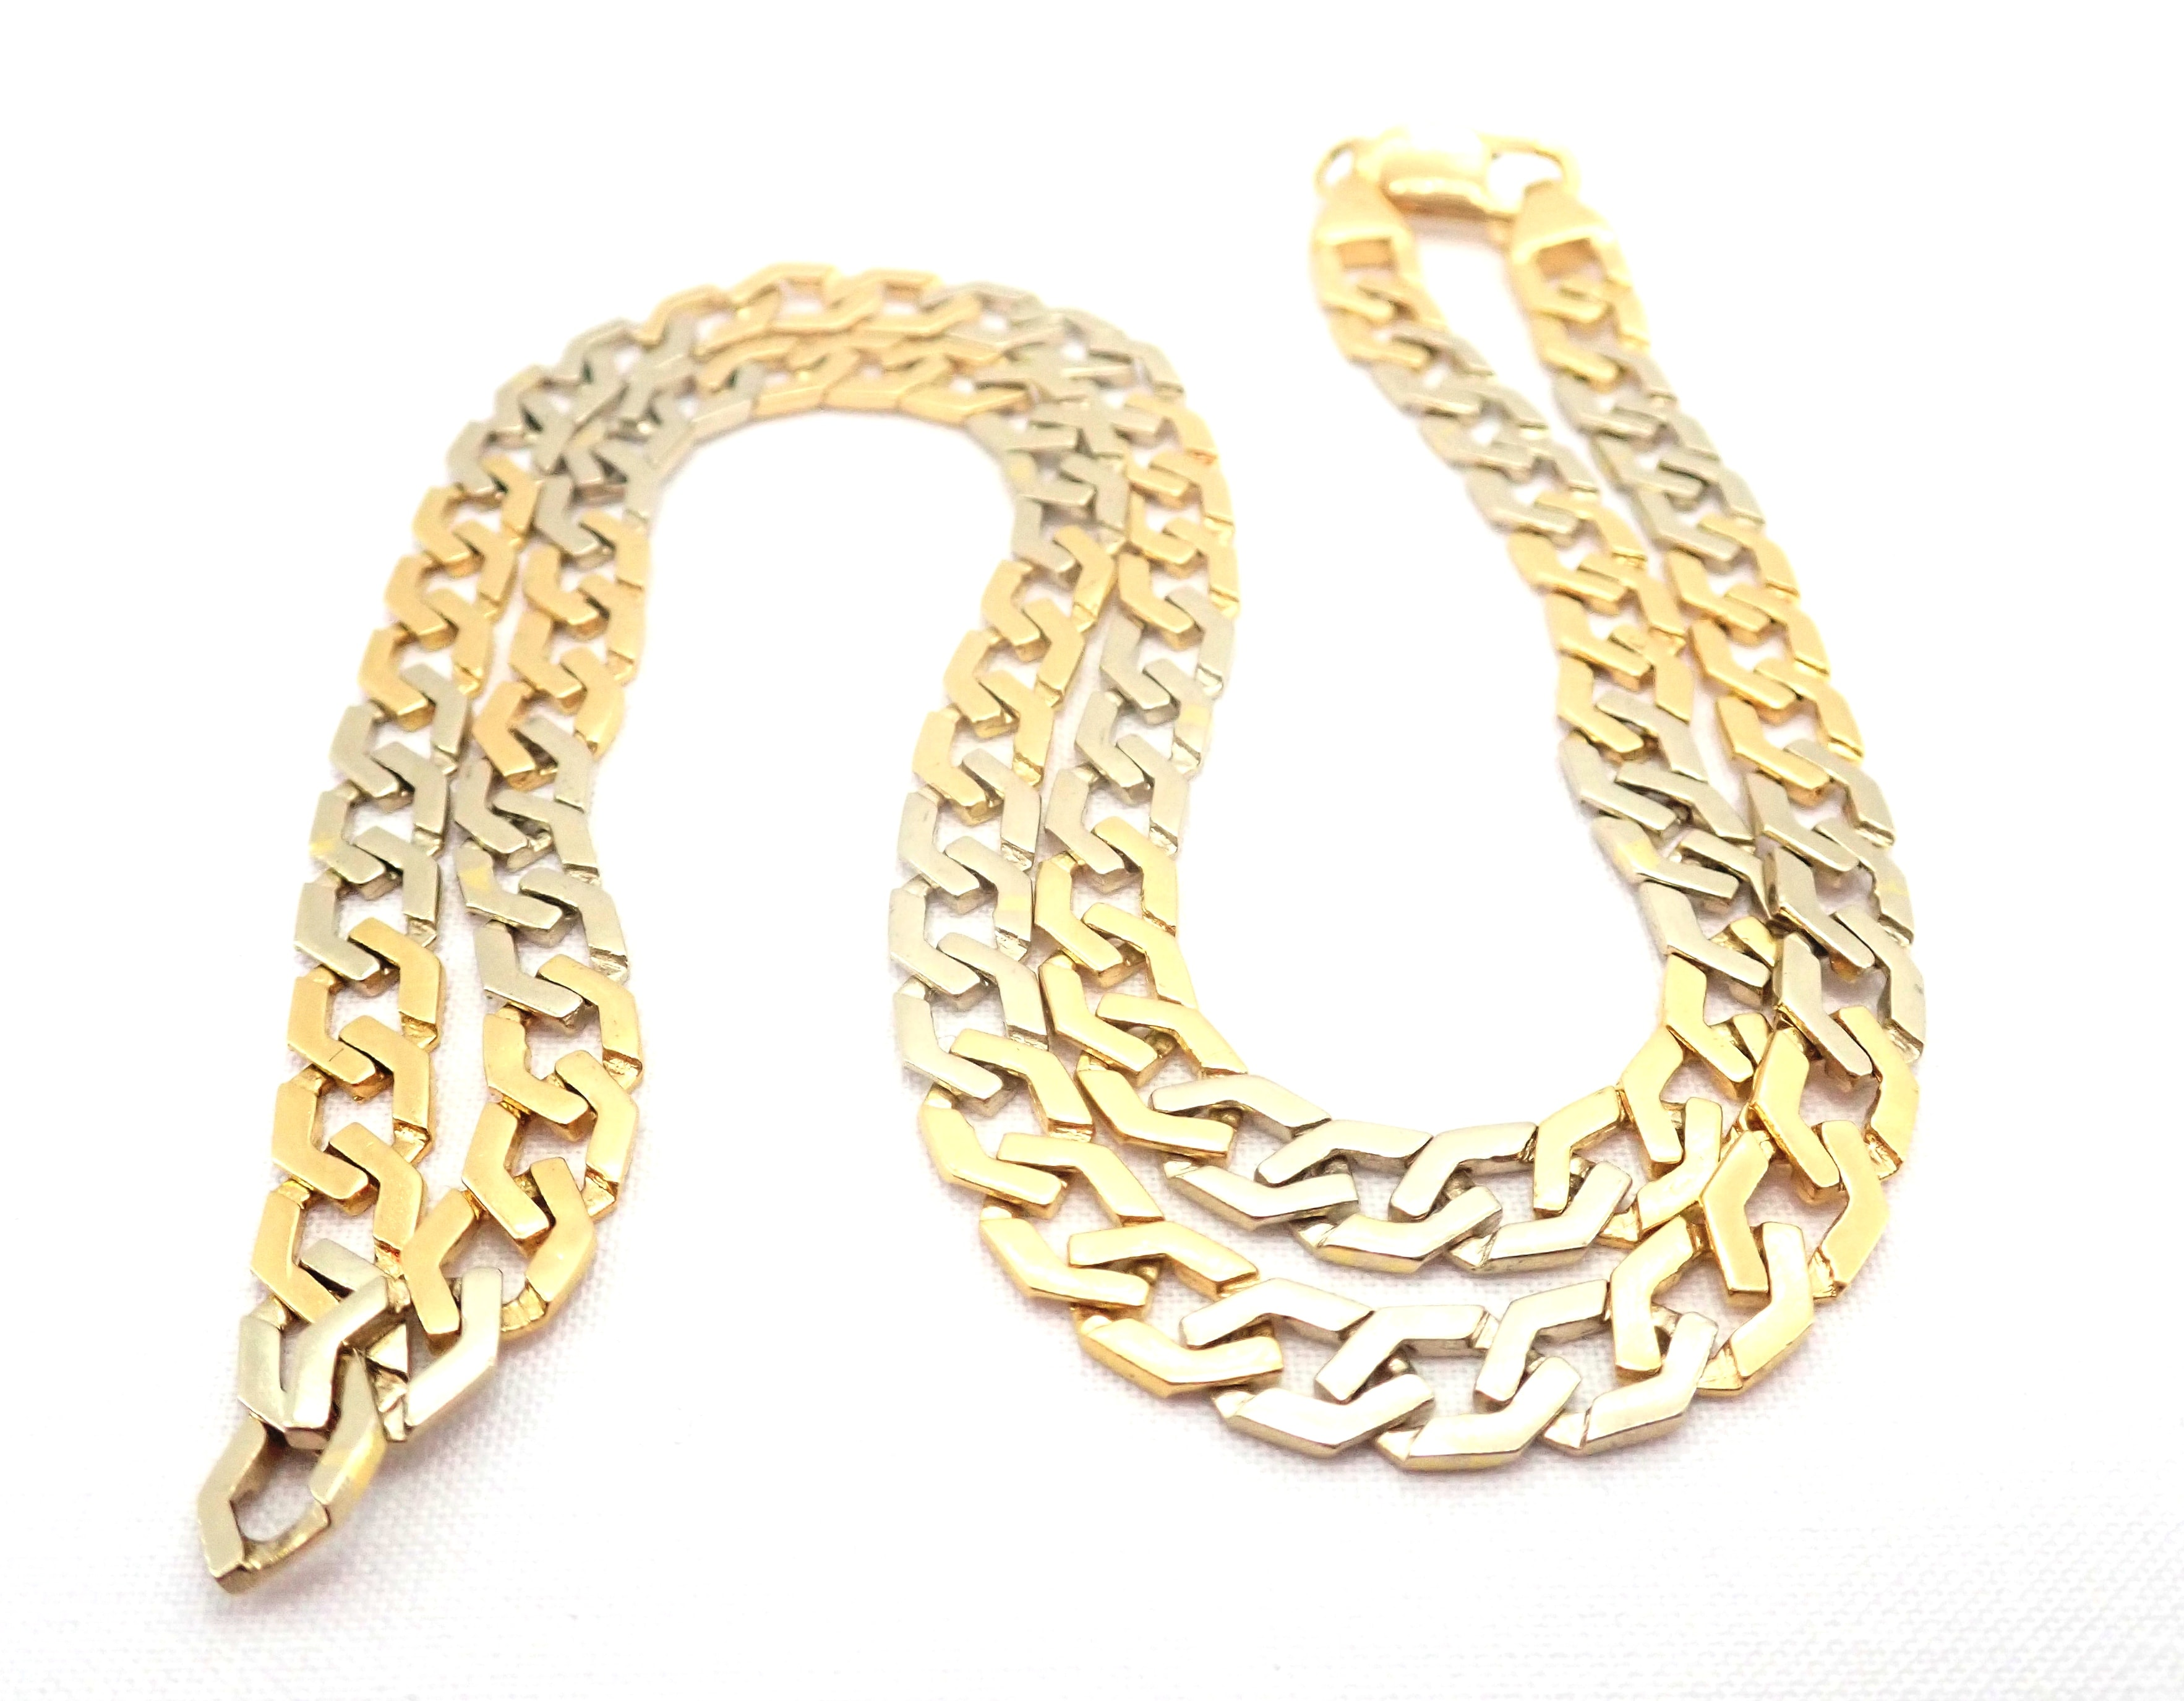 "AA000680 - 18ct Two Tone Gold Fancy Flat Linked Curb Chain Lobster Claw Clasp 20"" - 33.3 gms #5311"